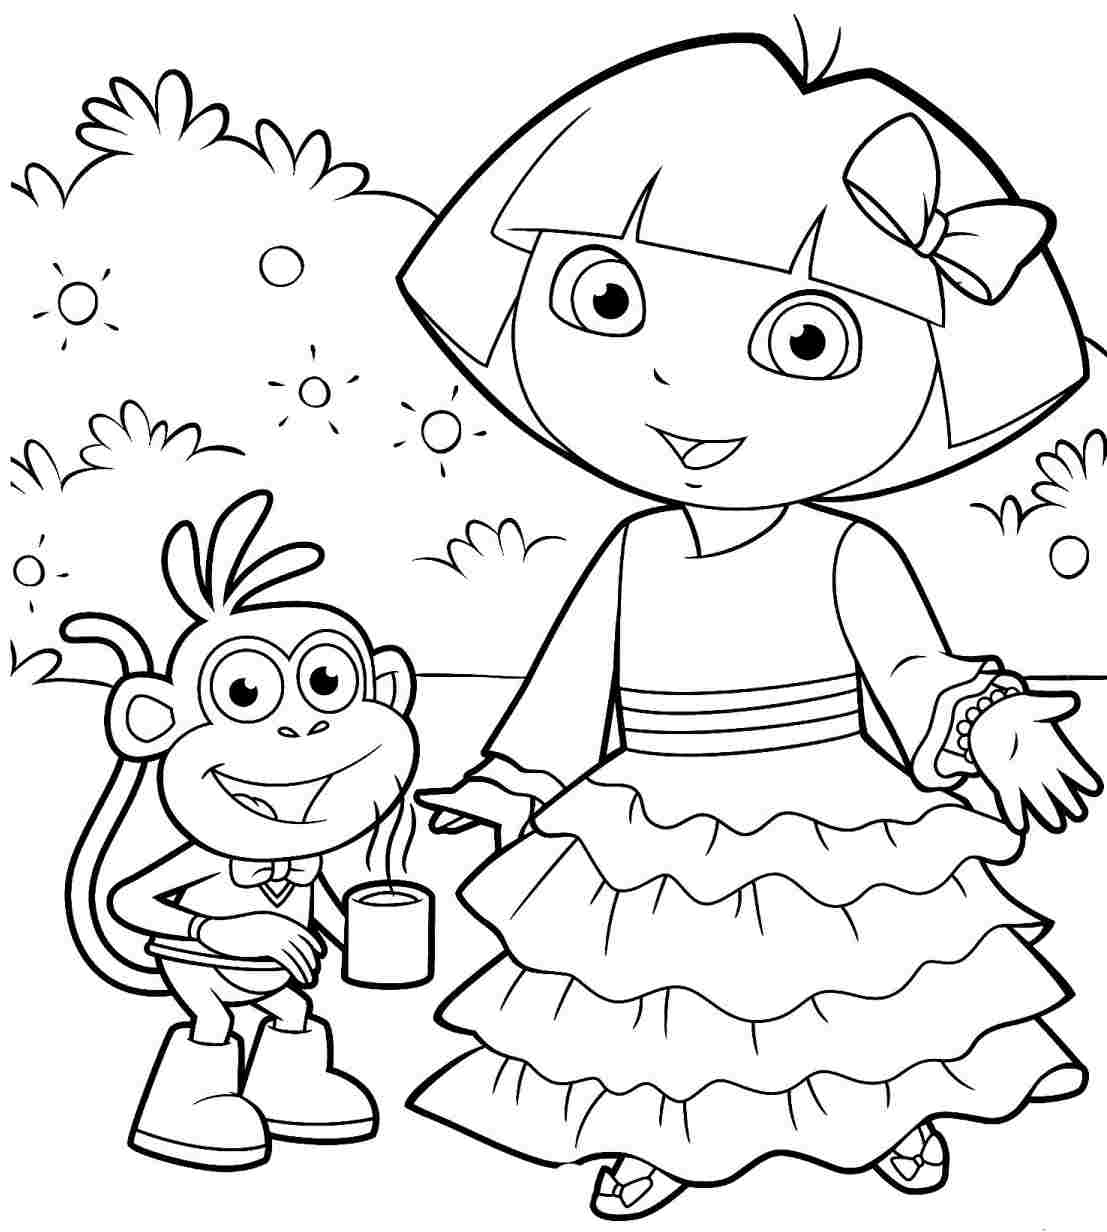 printable dora pictures dora the explorer drawing at getdrawings free download dora pictures printable